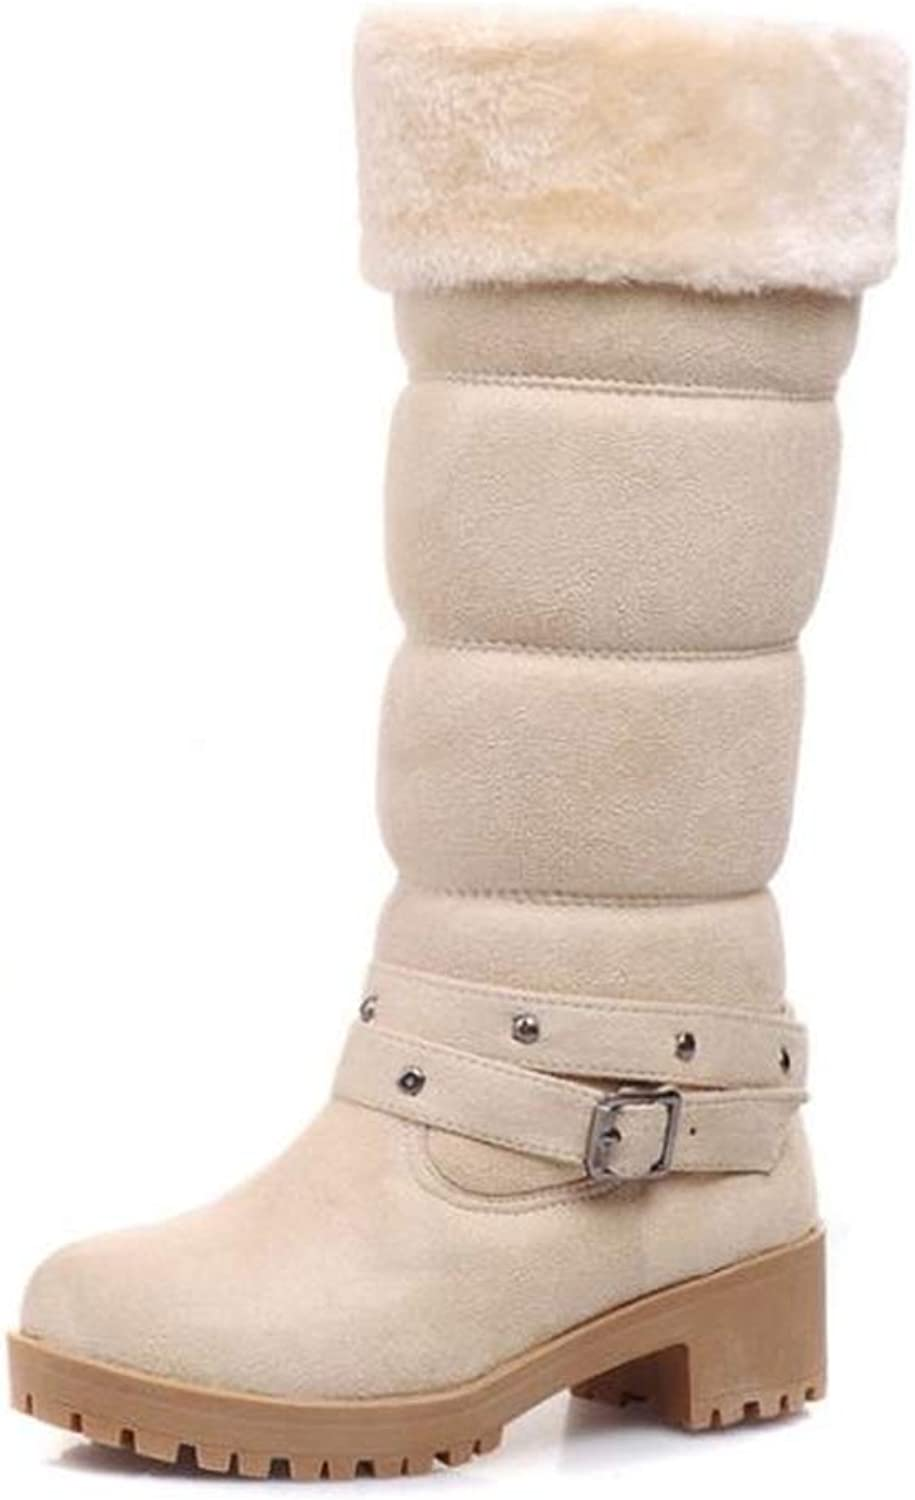 Believed Womens Soft Fur Lined Warm Winter Boot Button Mid Calf Faux Suede Girls